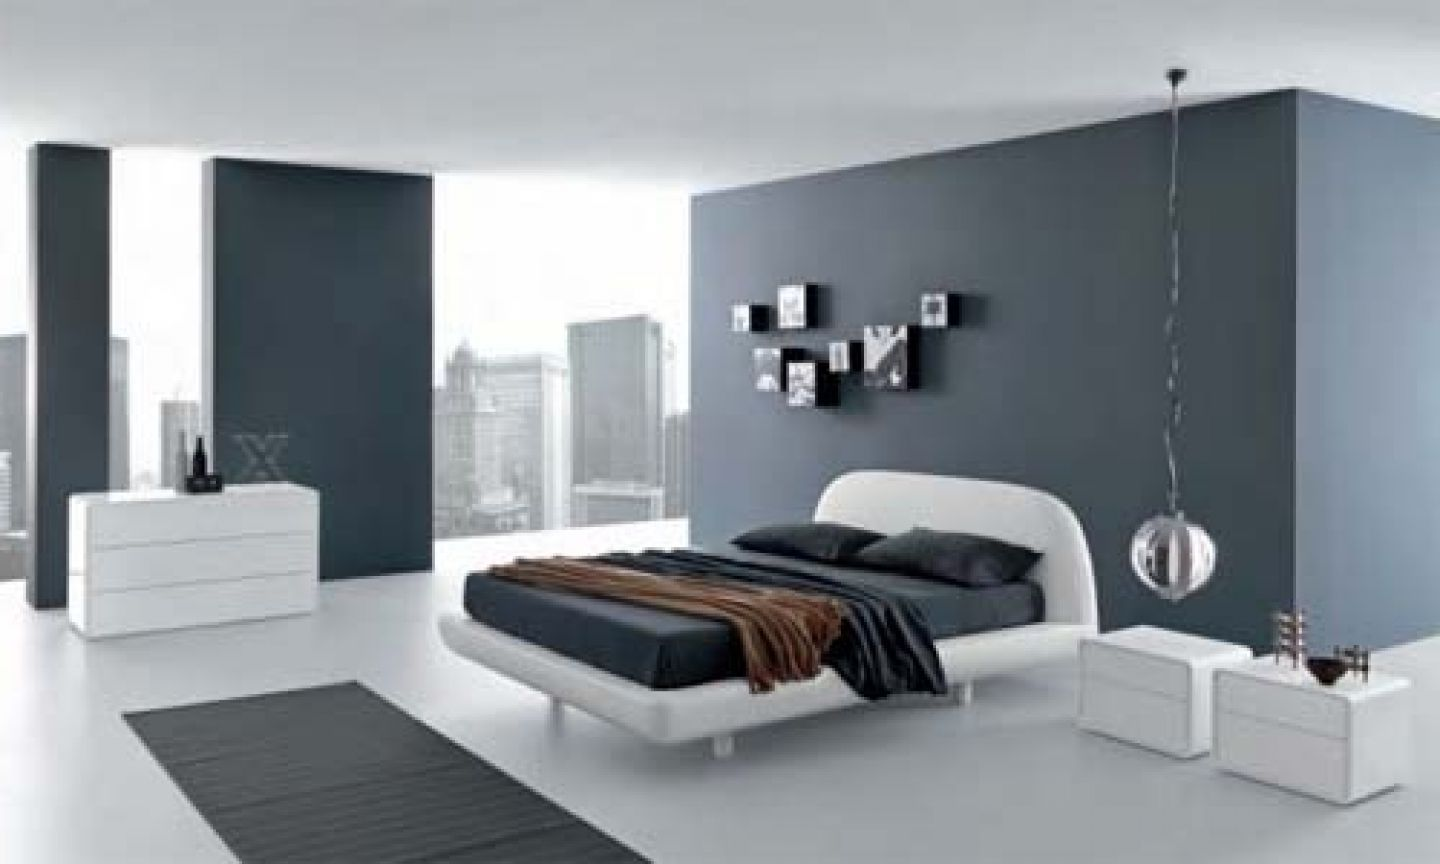 Like Colors Natural Lighting And Floor Color Grey Colour Scheme Bedroom Bedroom Color Schemes Grey Bedroom Colors